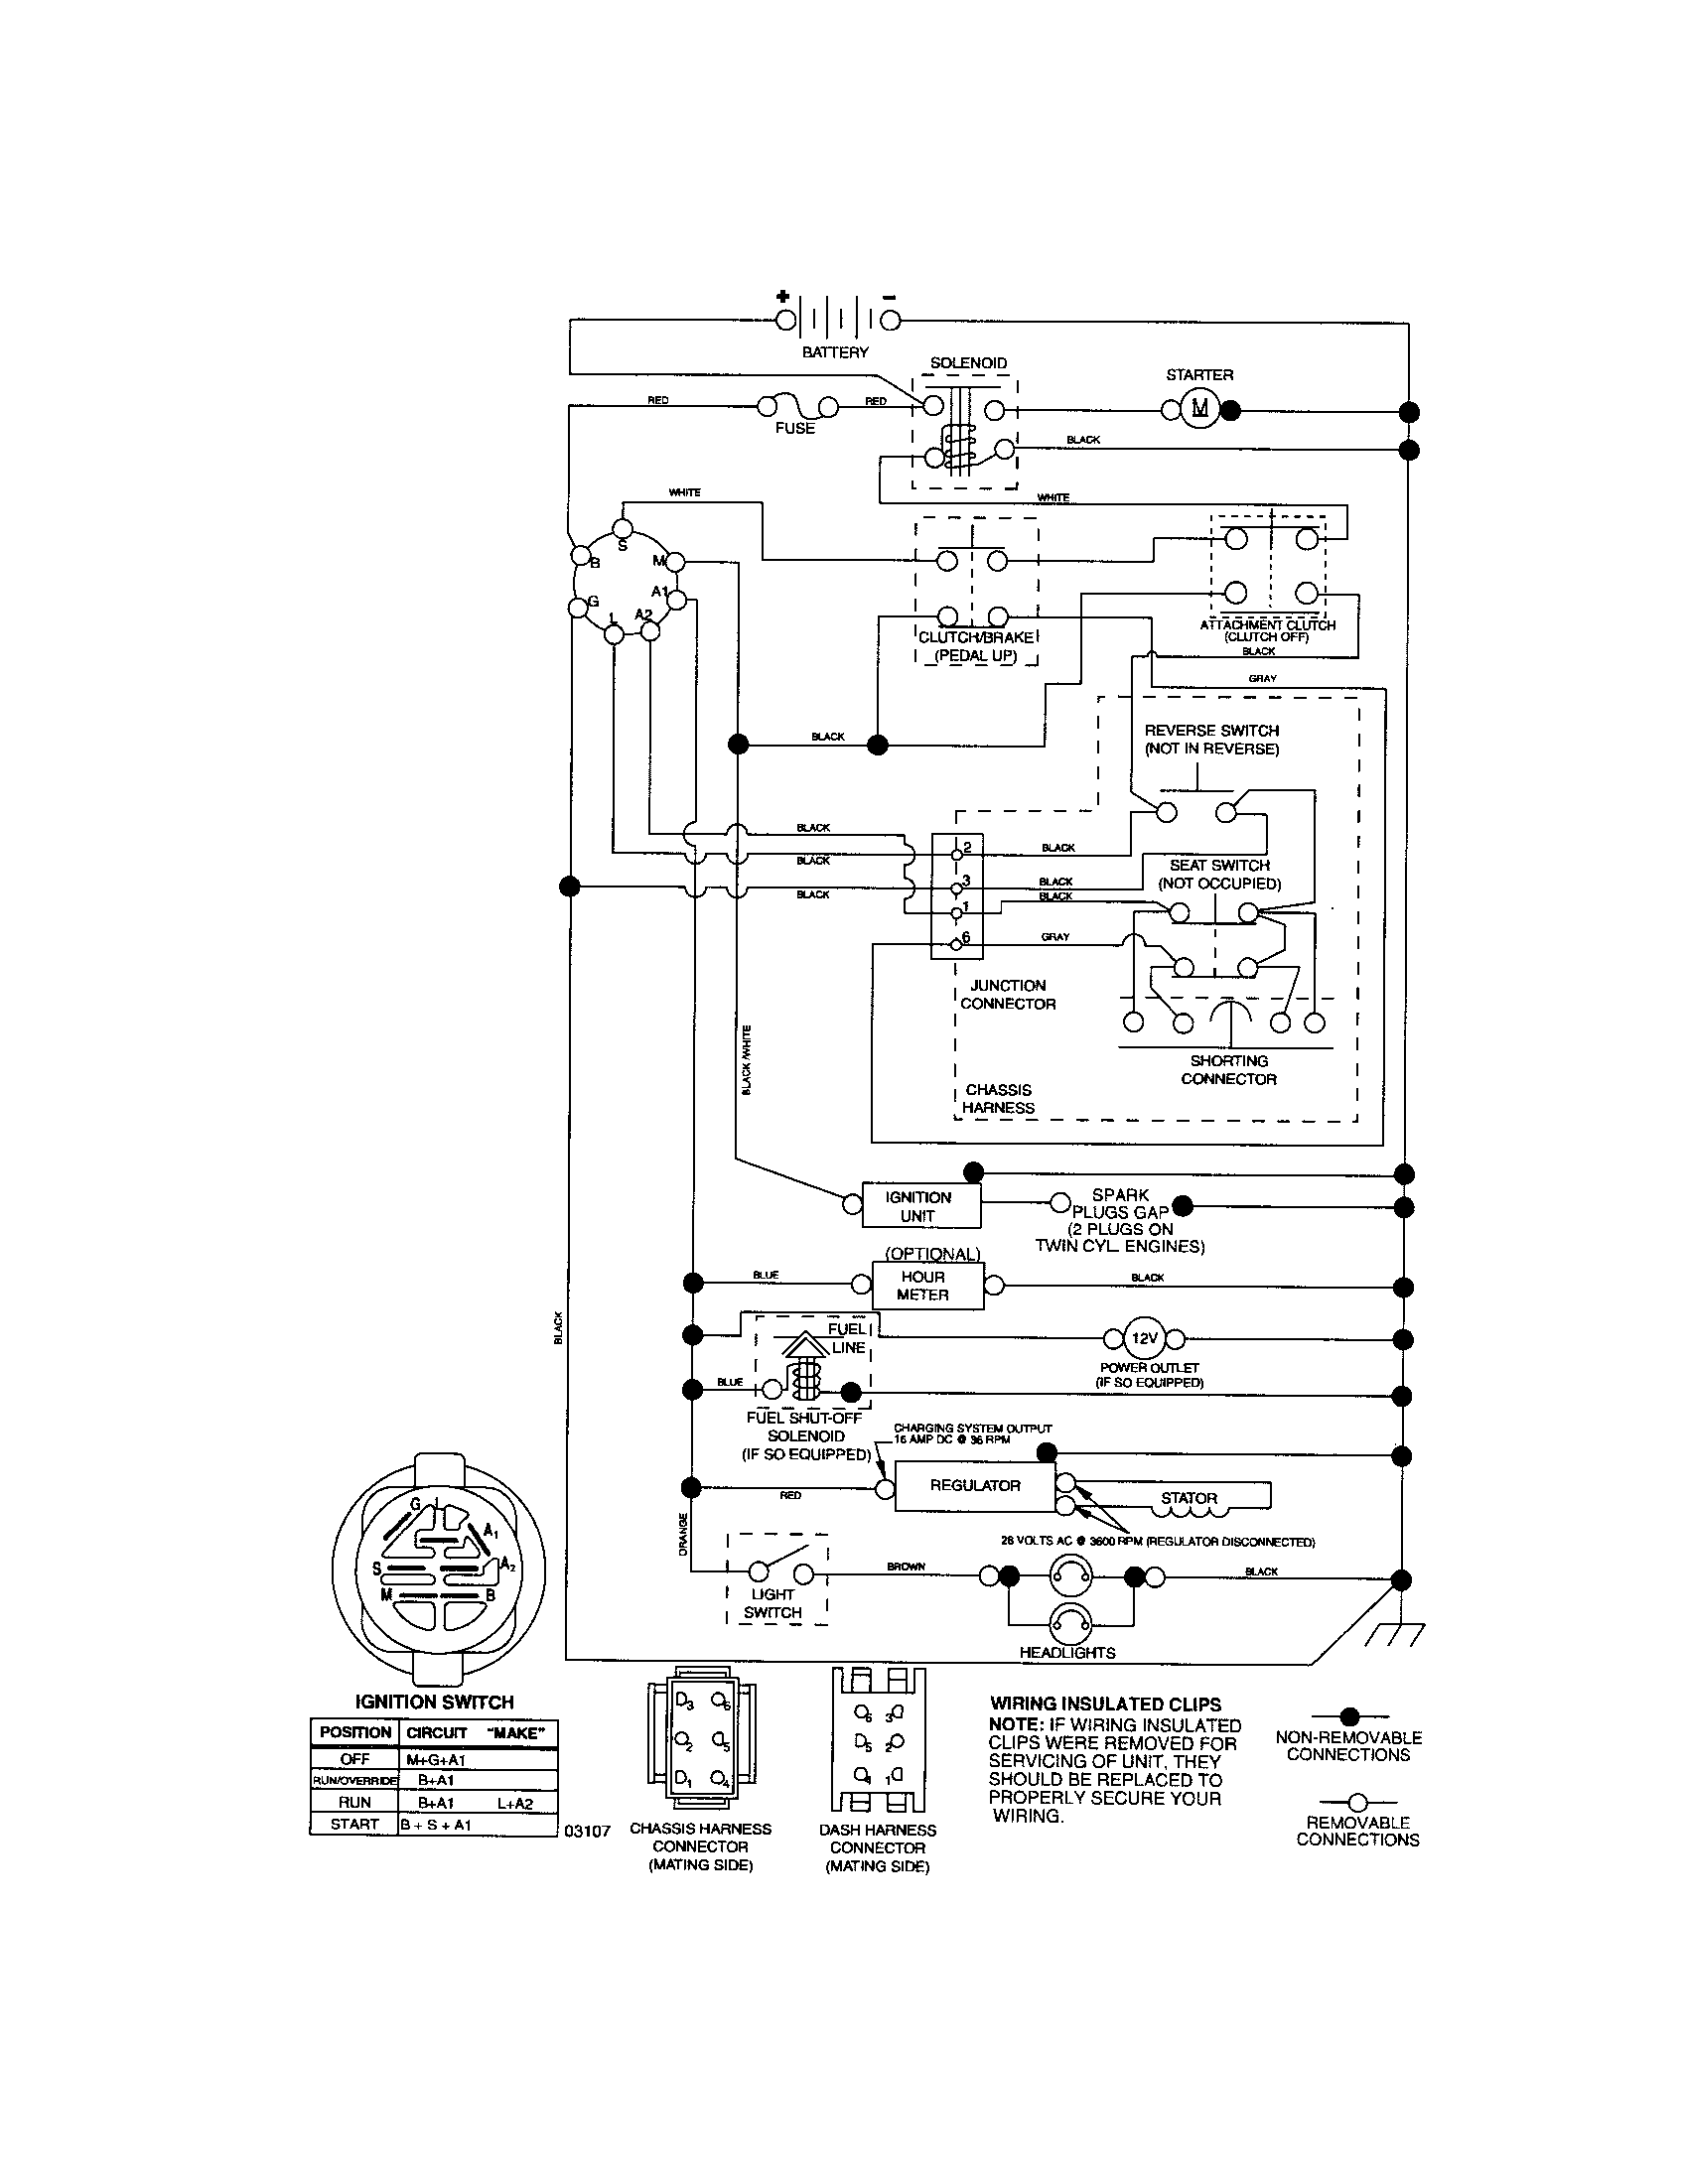 small resolution of craftsman riding mower electrical diagram wiring diagram craftsman craftsman riding mower electrical diagram wiring diagram craftsman